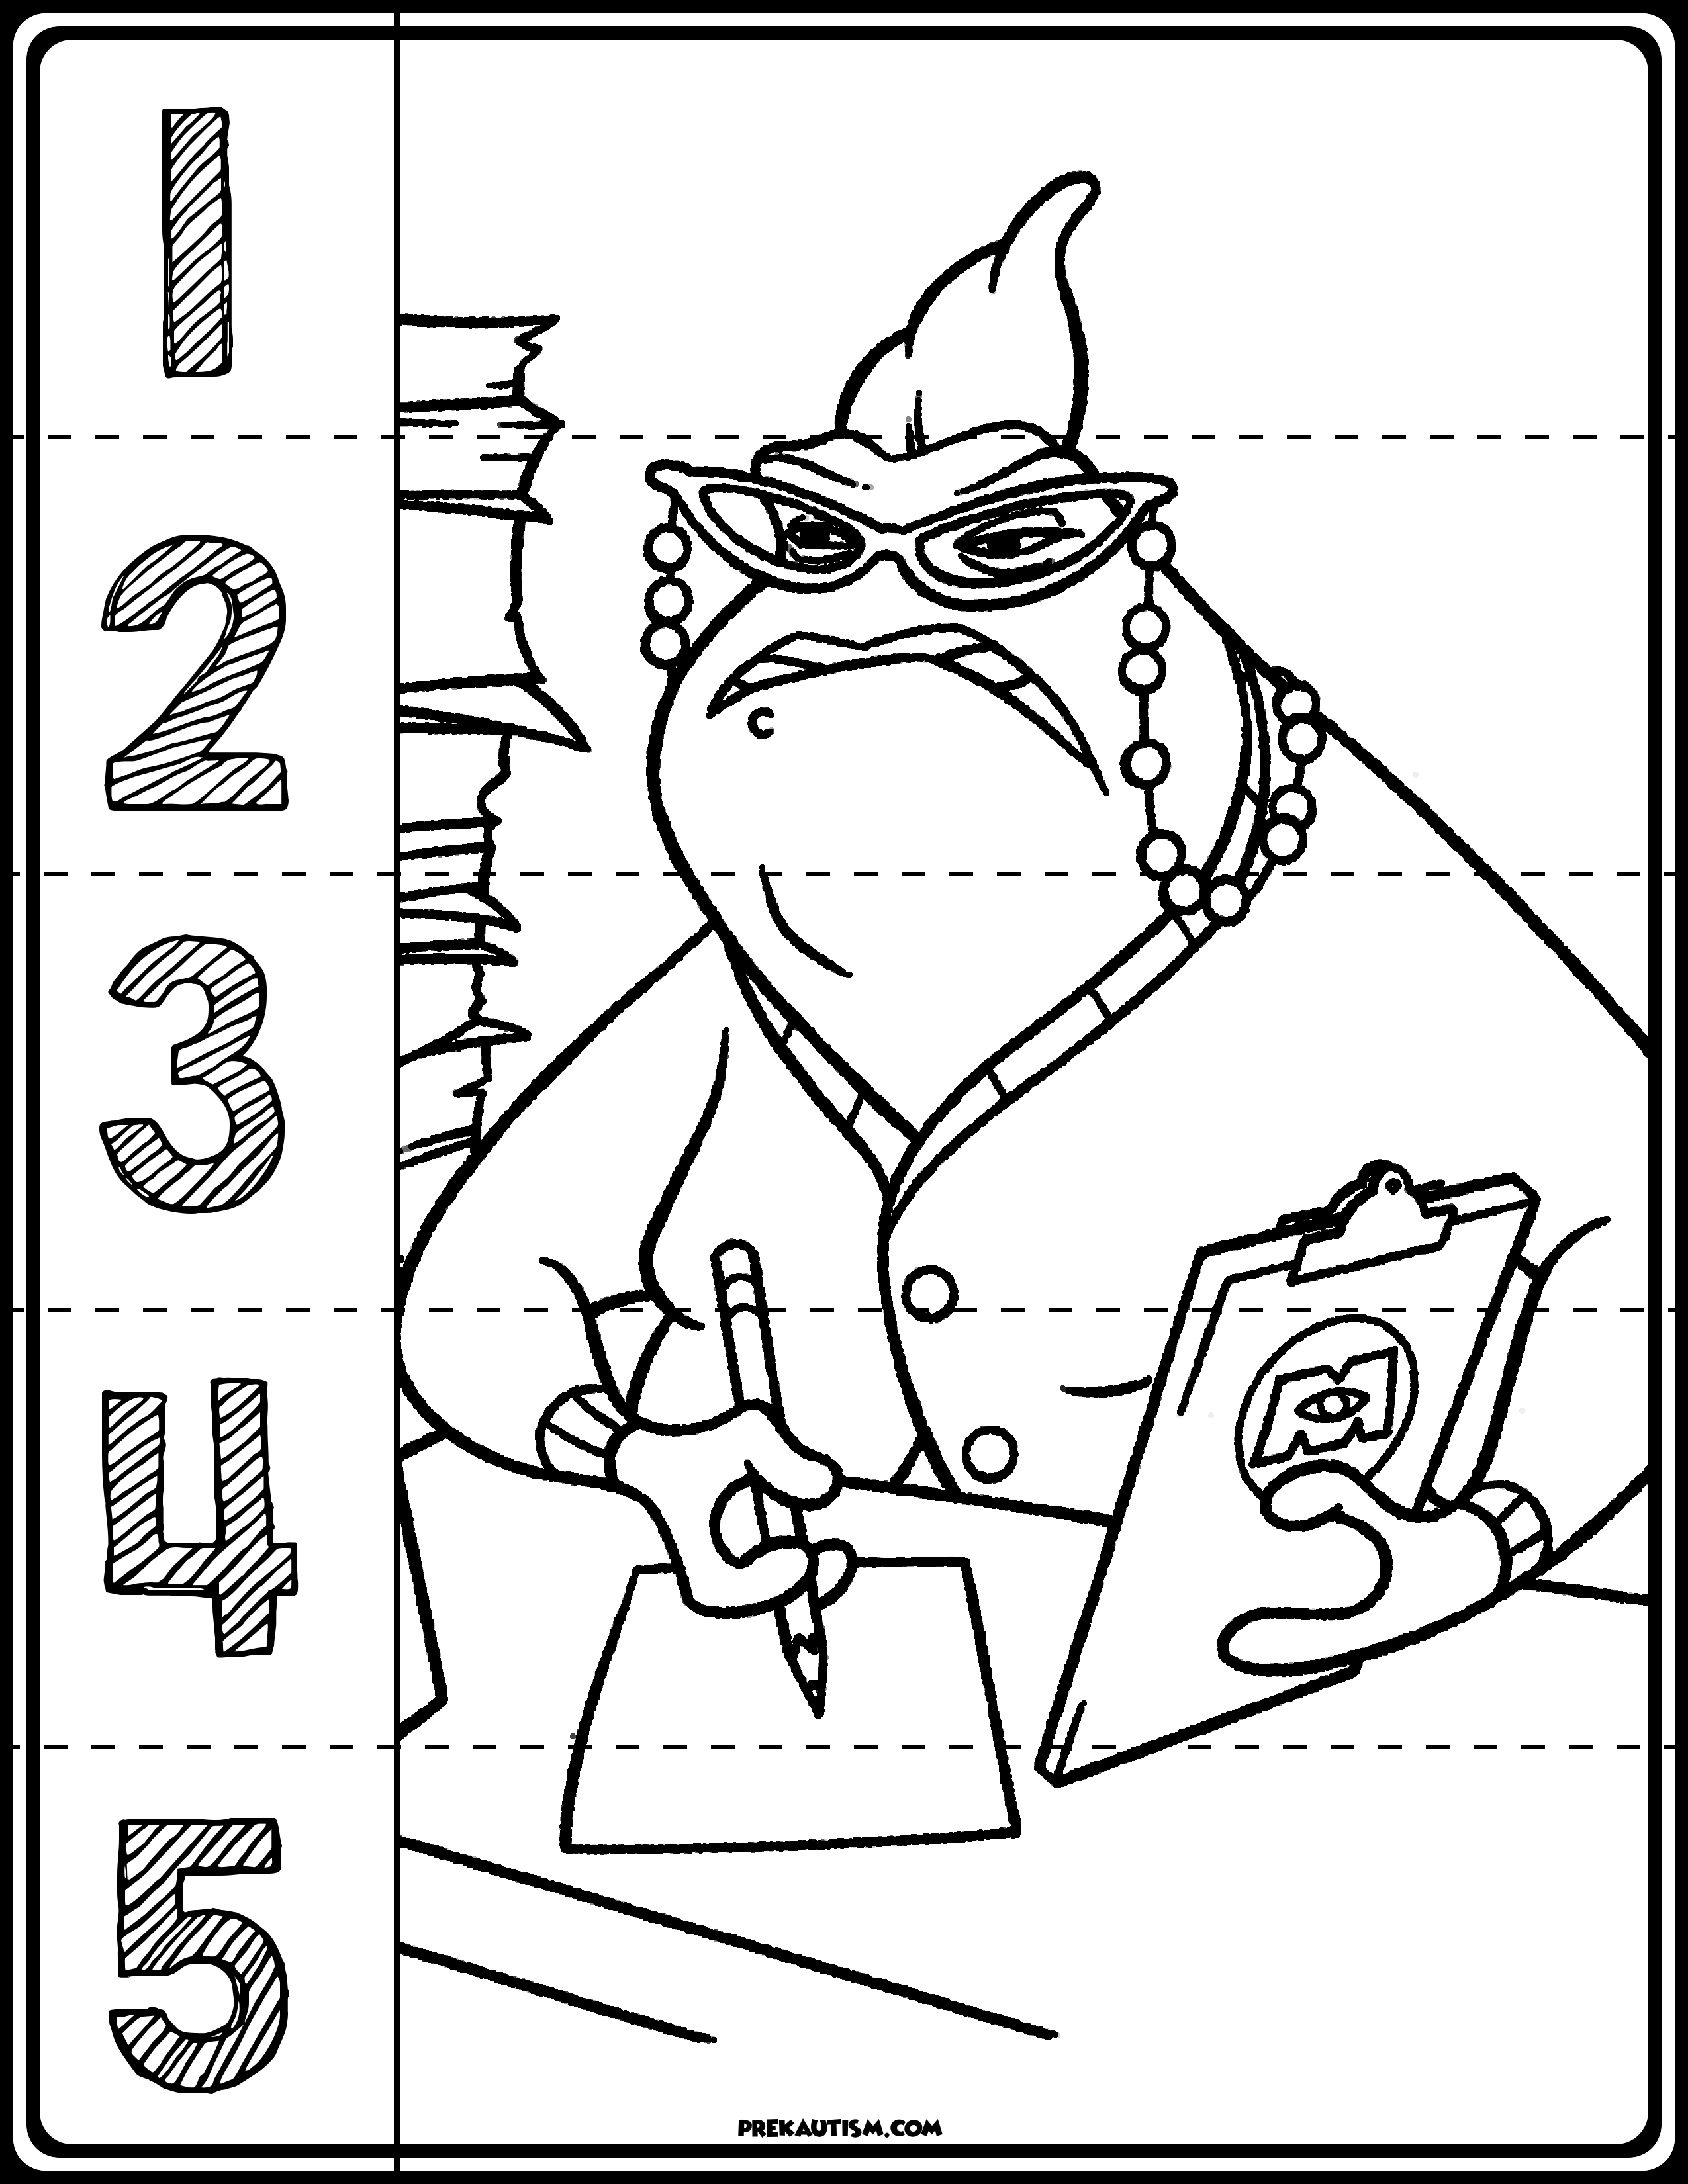 Monster Inc. Number Puzzles | My Tpt Store | Printable Math - Printable Monster Puzzle